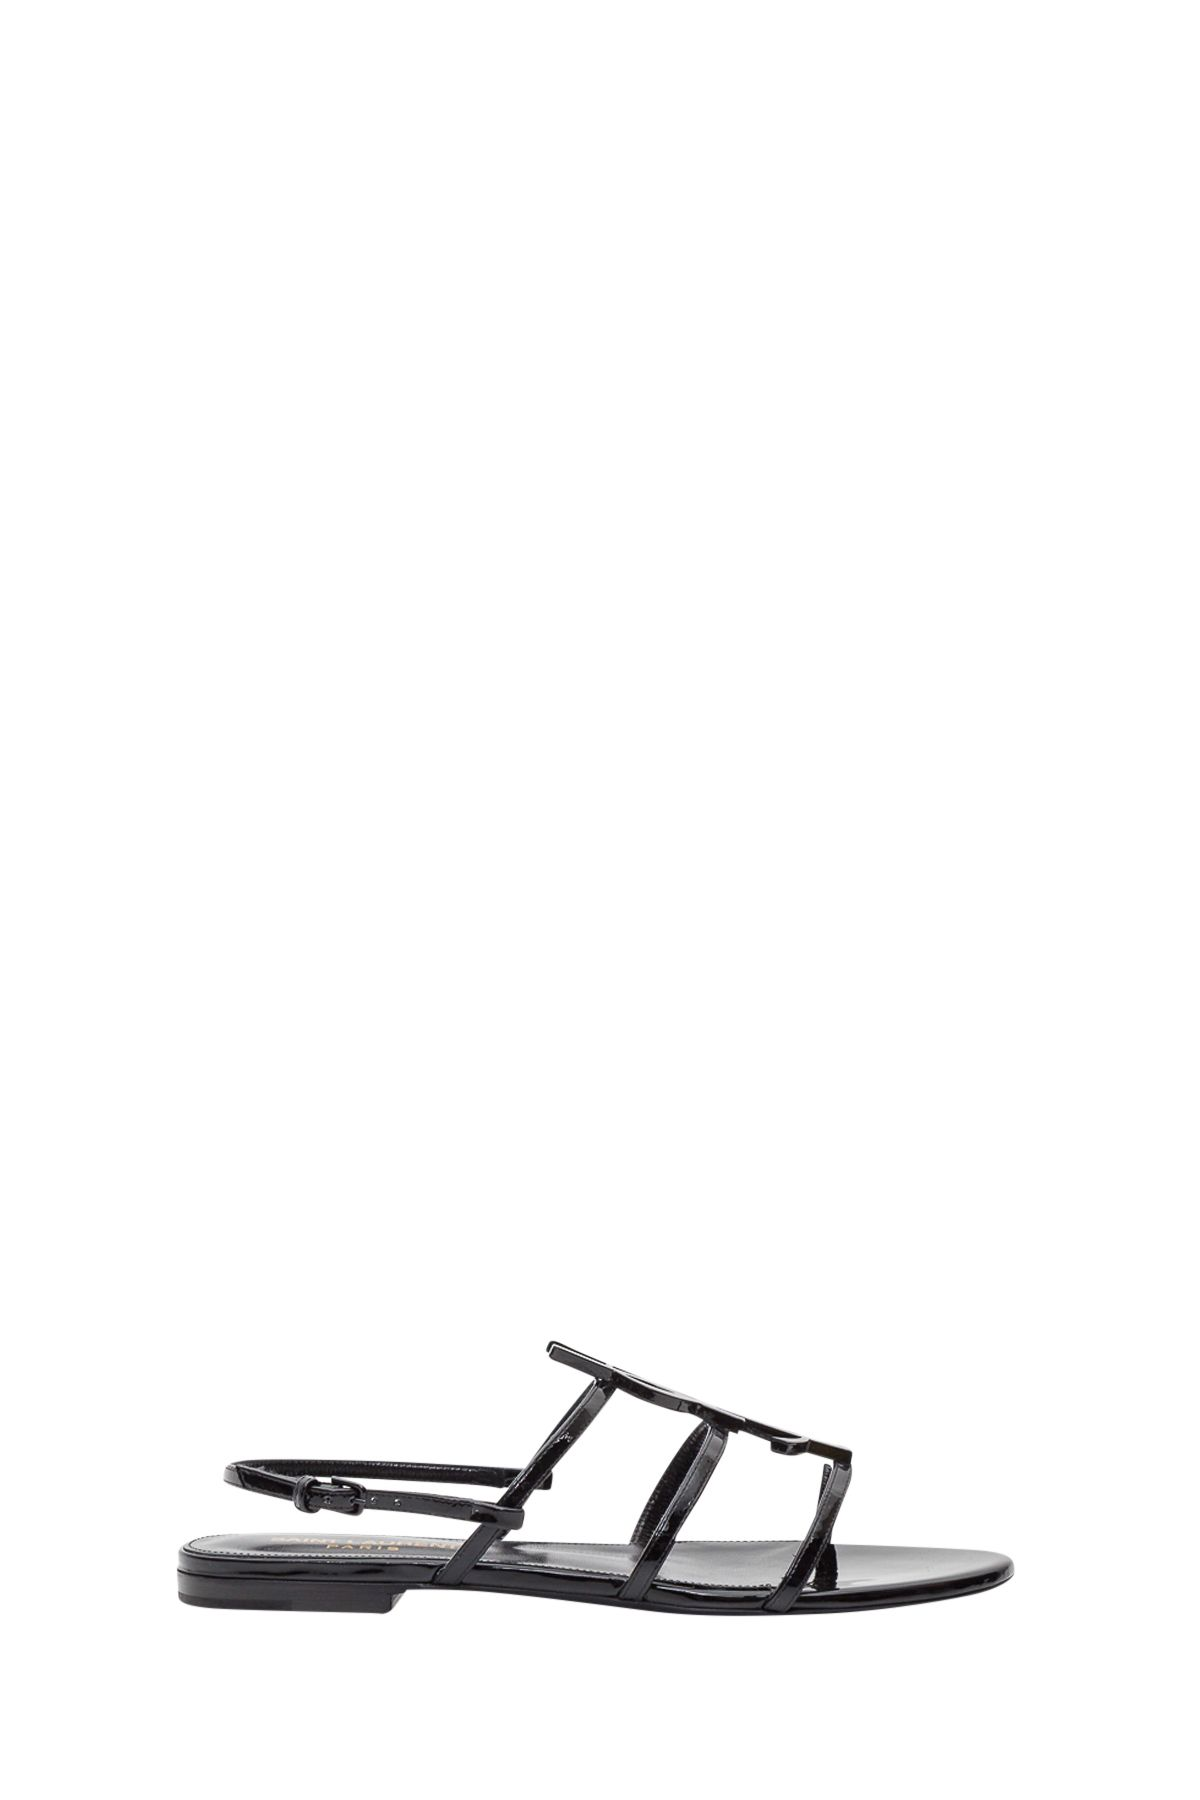 Saint Laurent Cassandra Open Sandals